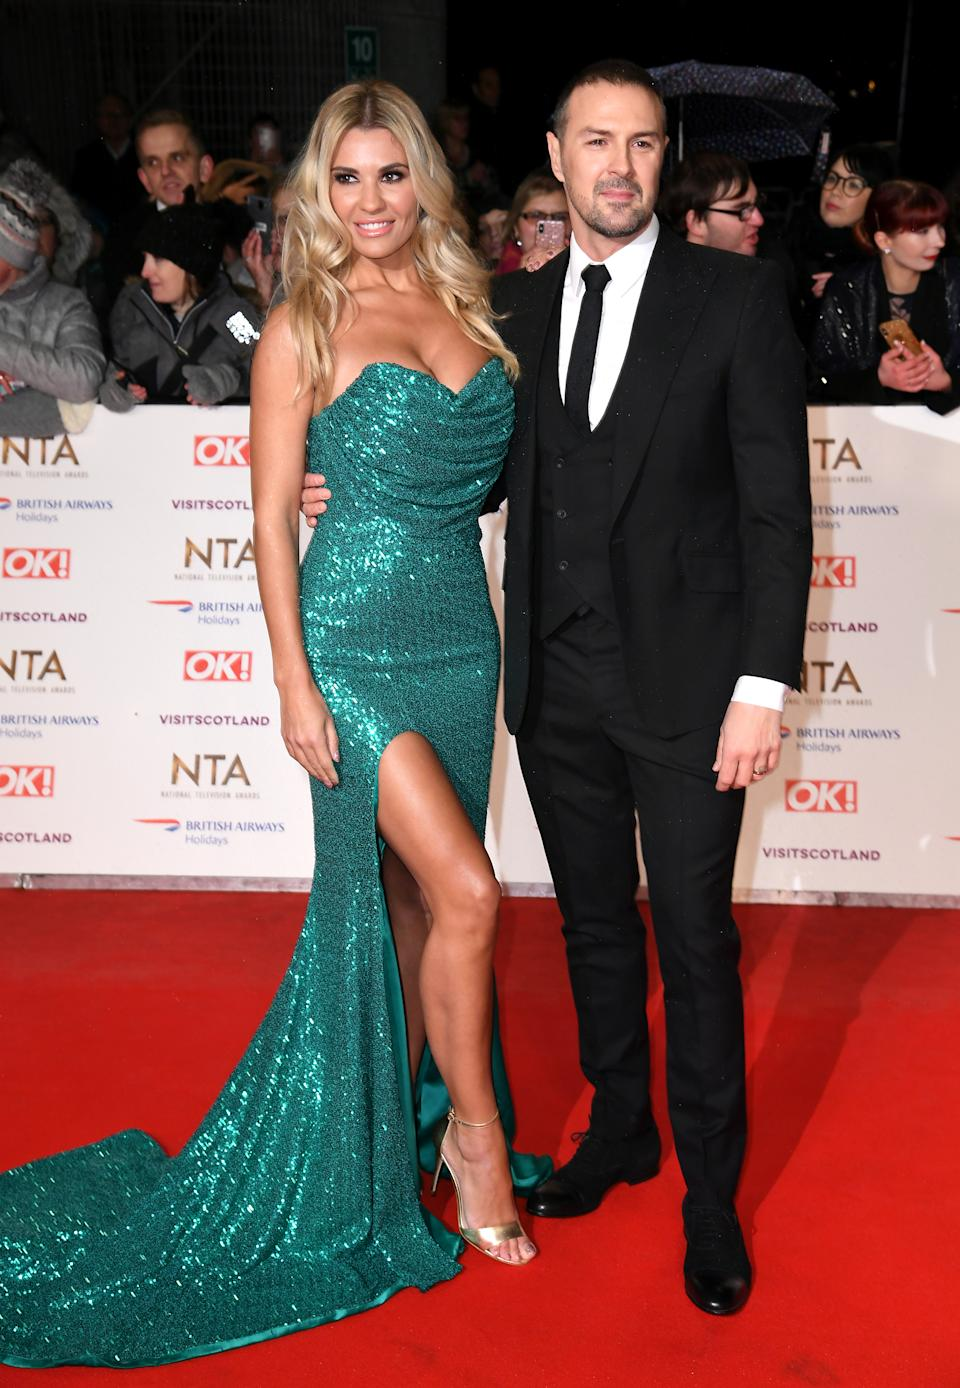 Paddy McGuinness (right) and Christine McGuinness attending the National Television Awards 2019 held at the O2 Arena, London. Photo credit should read: Doug Peters/EMPICS